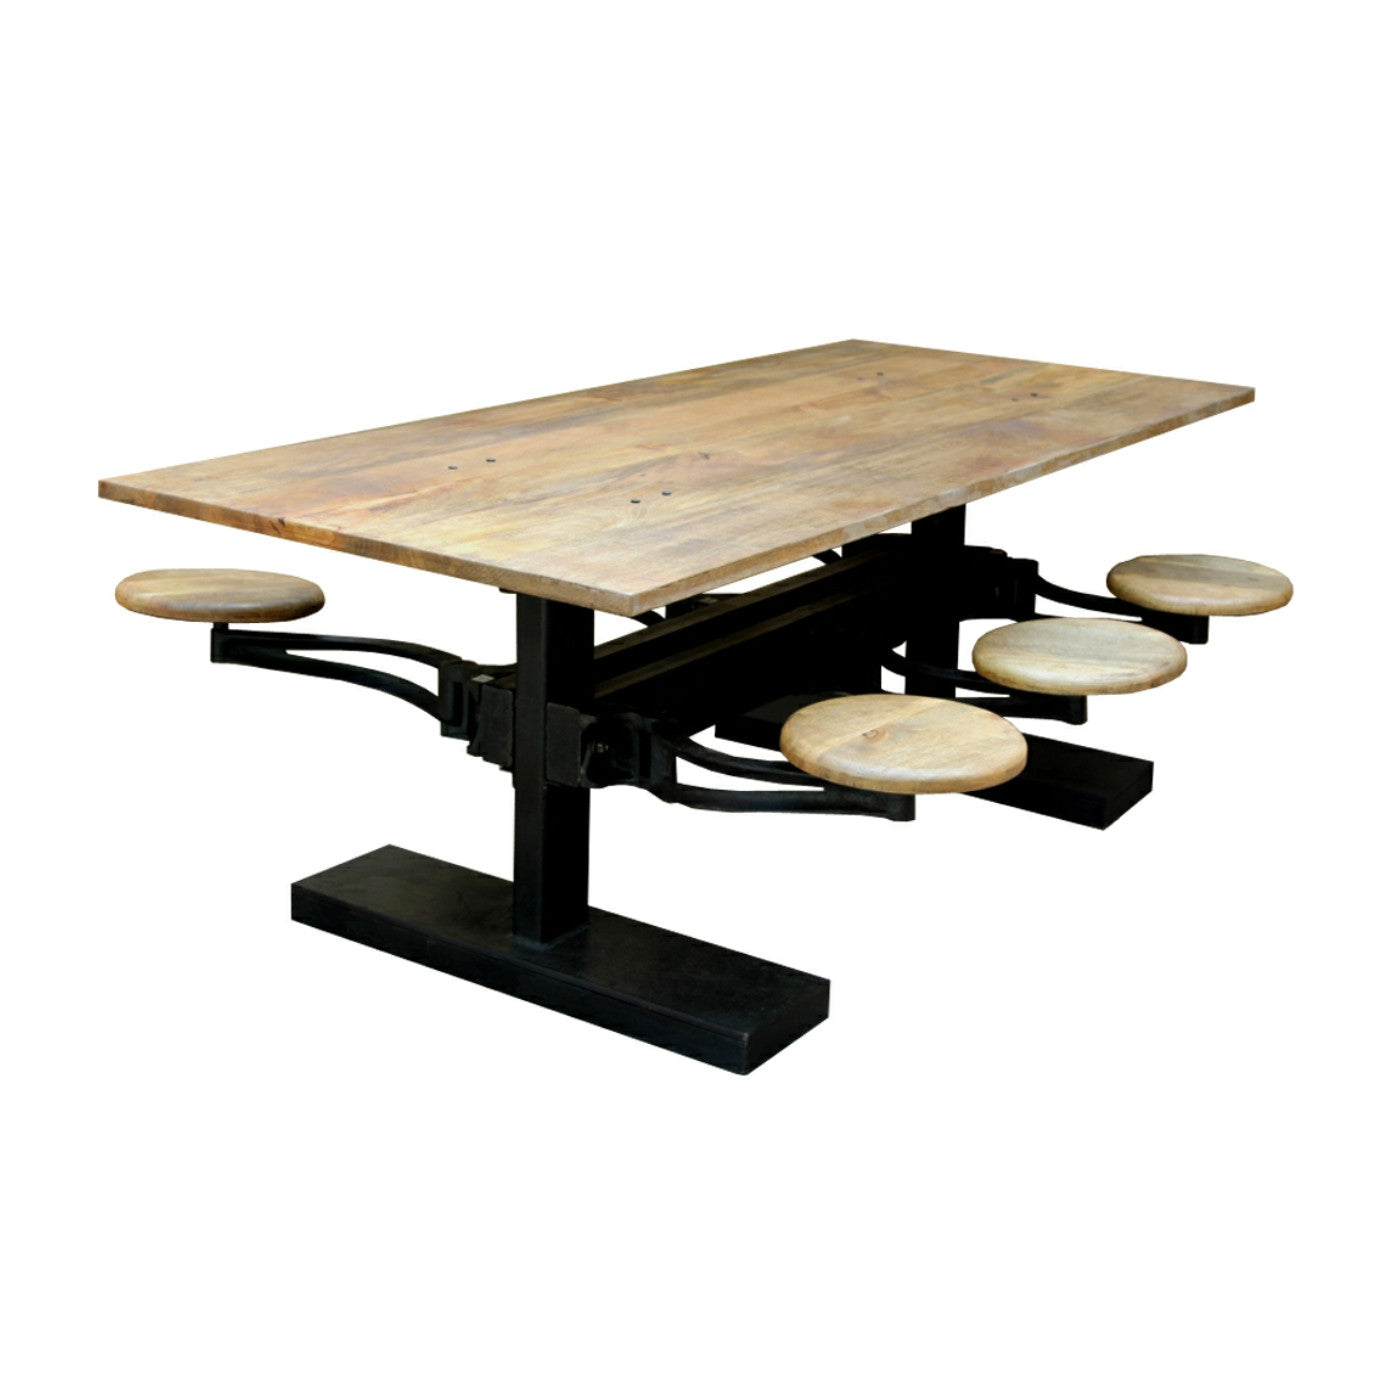 Breakfast Table With Stools: Industrial Dining Table With Retractable Stools